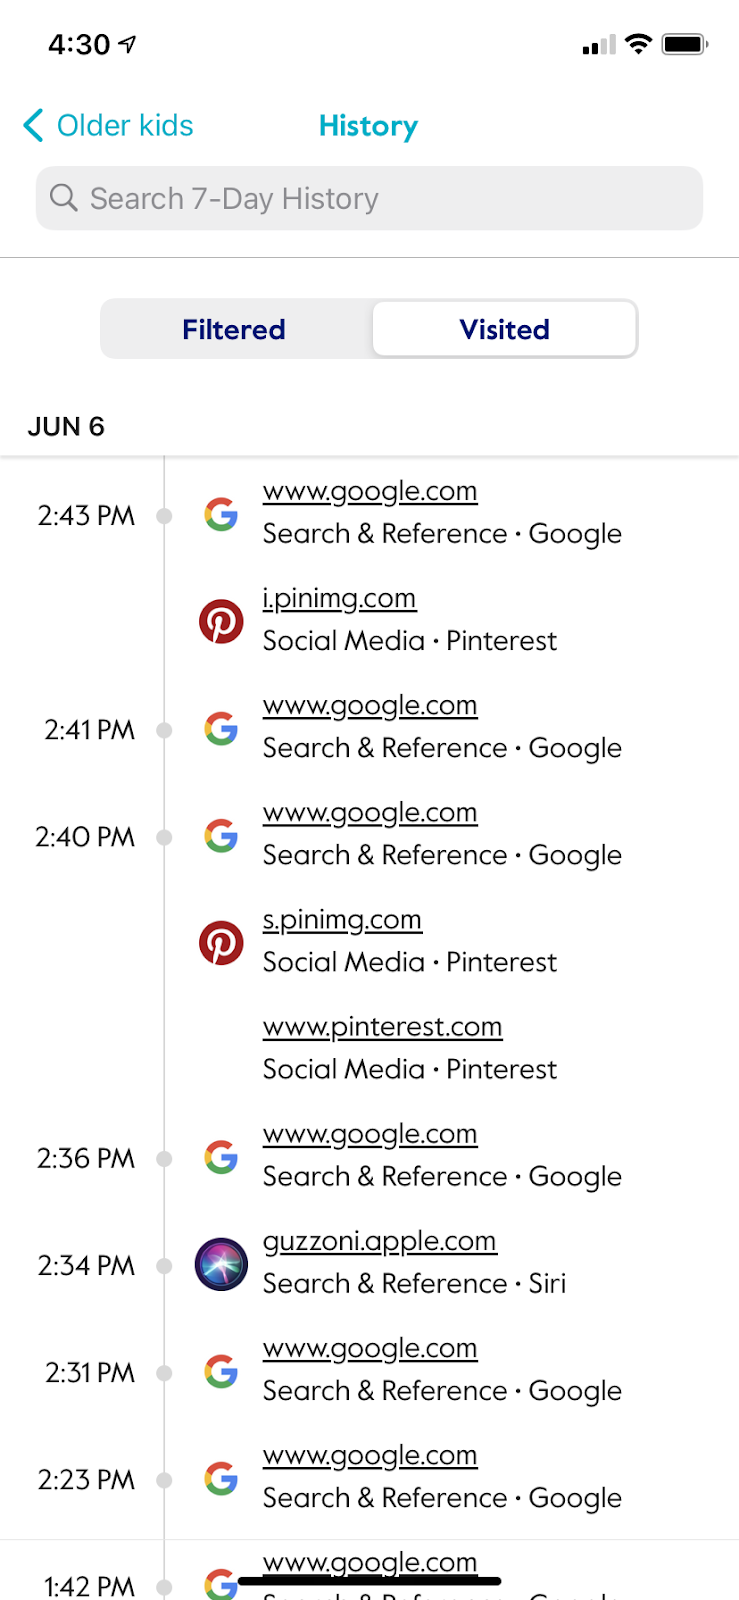 screenshot from circle app showing 7-day visited history urls